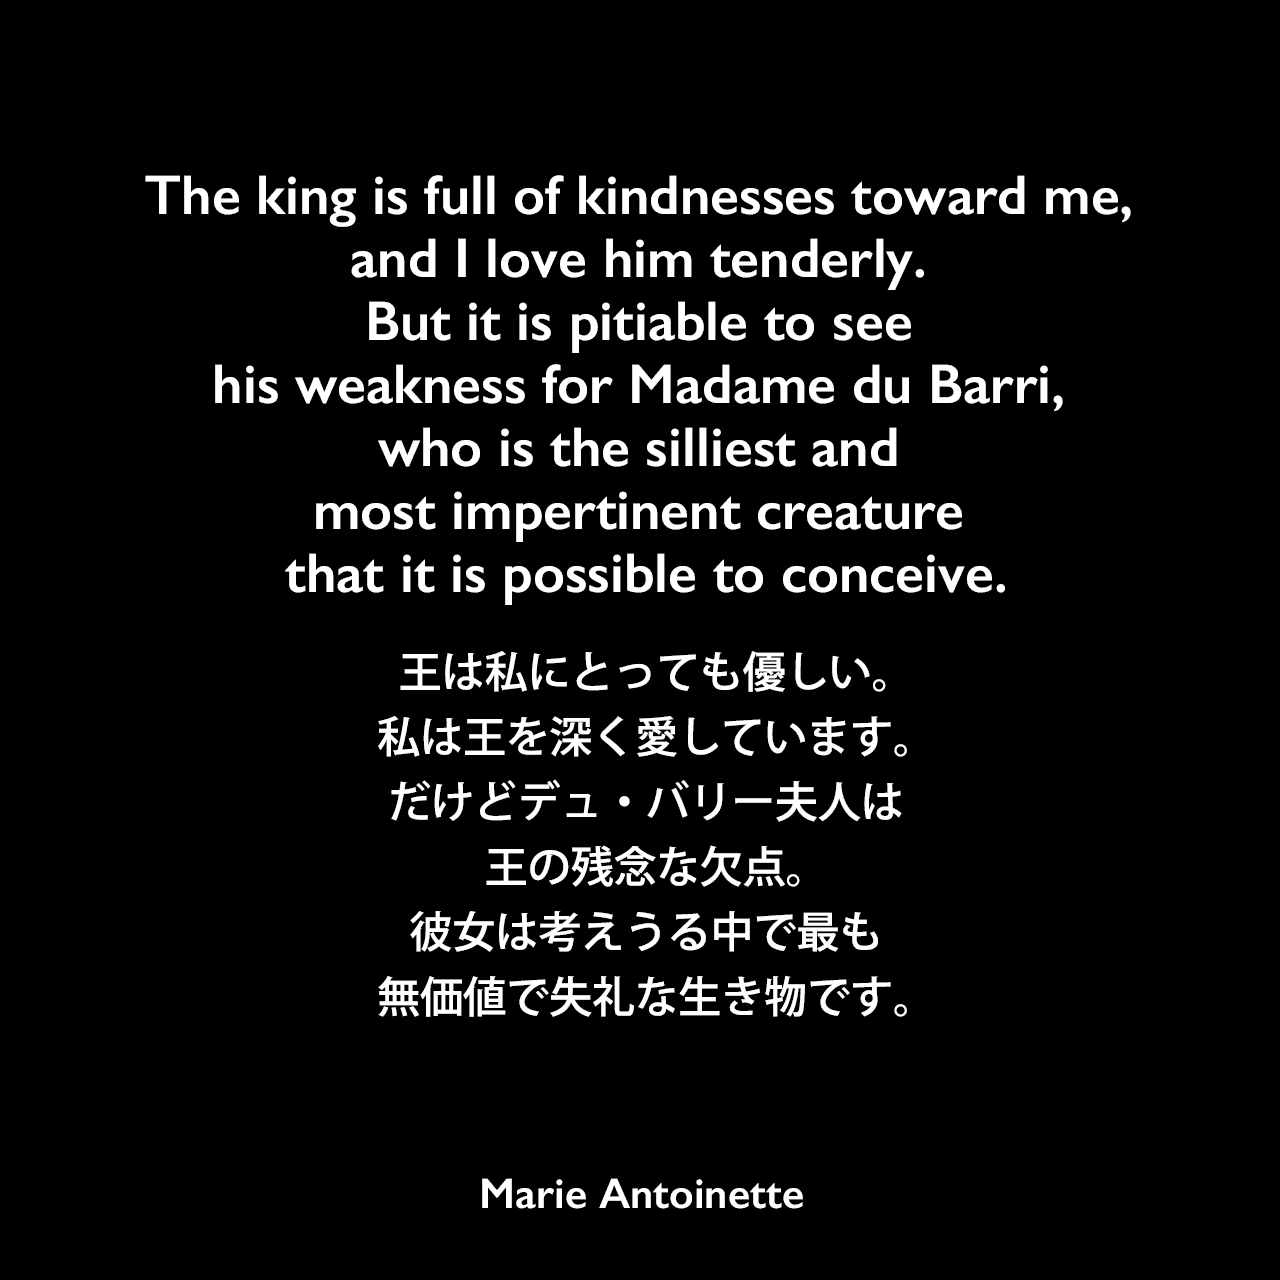 The king is full of kindnesses toward me, and I love him tenderly. But it is pitiable to see his weakness for Madame du Barri, who is the silliest and most impertinent creature that it is possible to conceive.王は私にとっても優しい。私は王を深く愛しています。だけどデュ・バリー夫人は王の残念な欠点。彼女は考えうる中で最も無価値で失礼な生き物です。Marie Antoinette